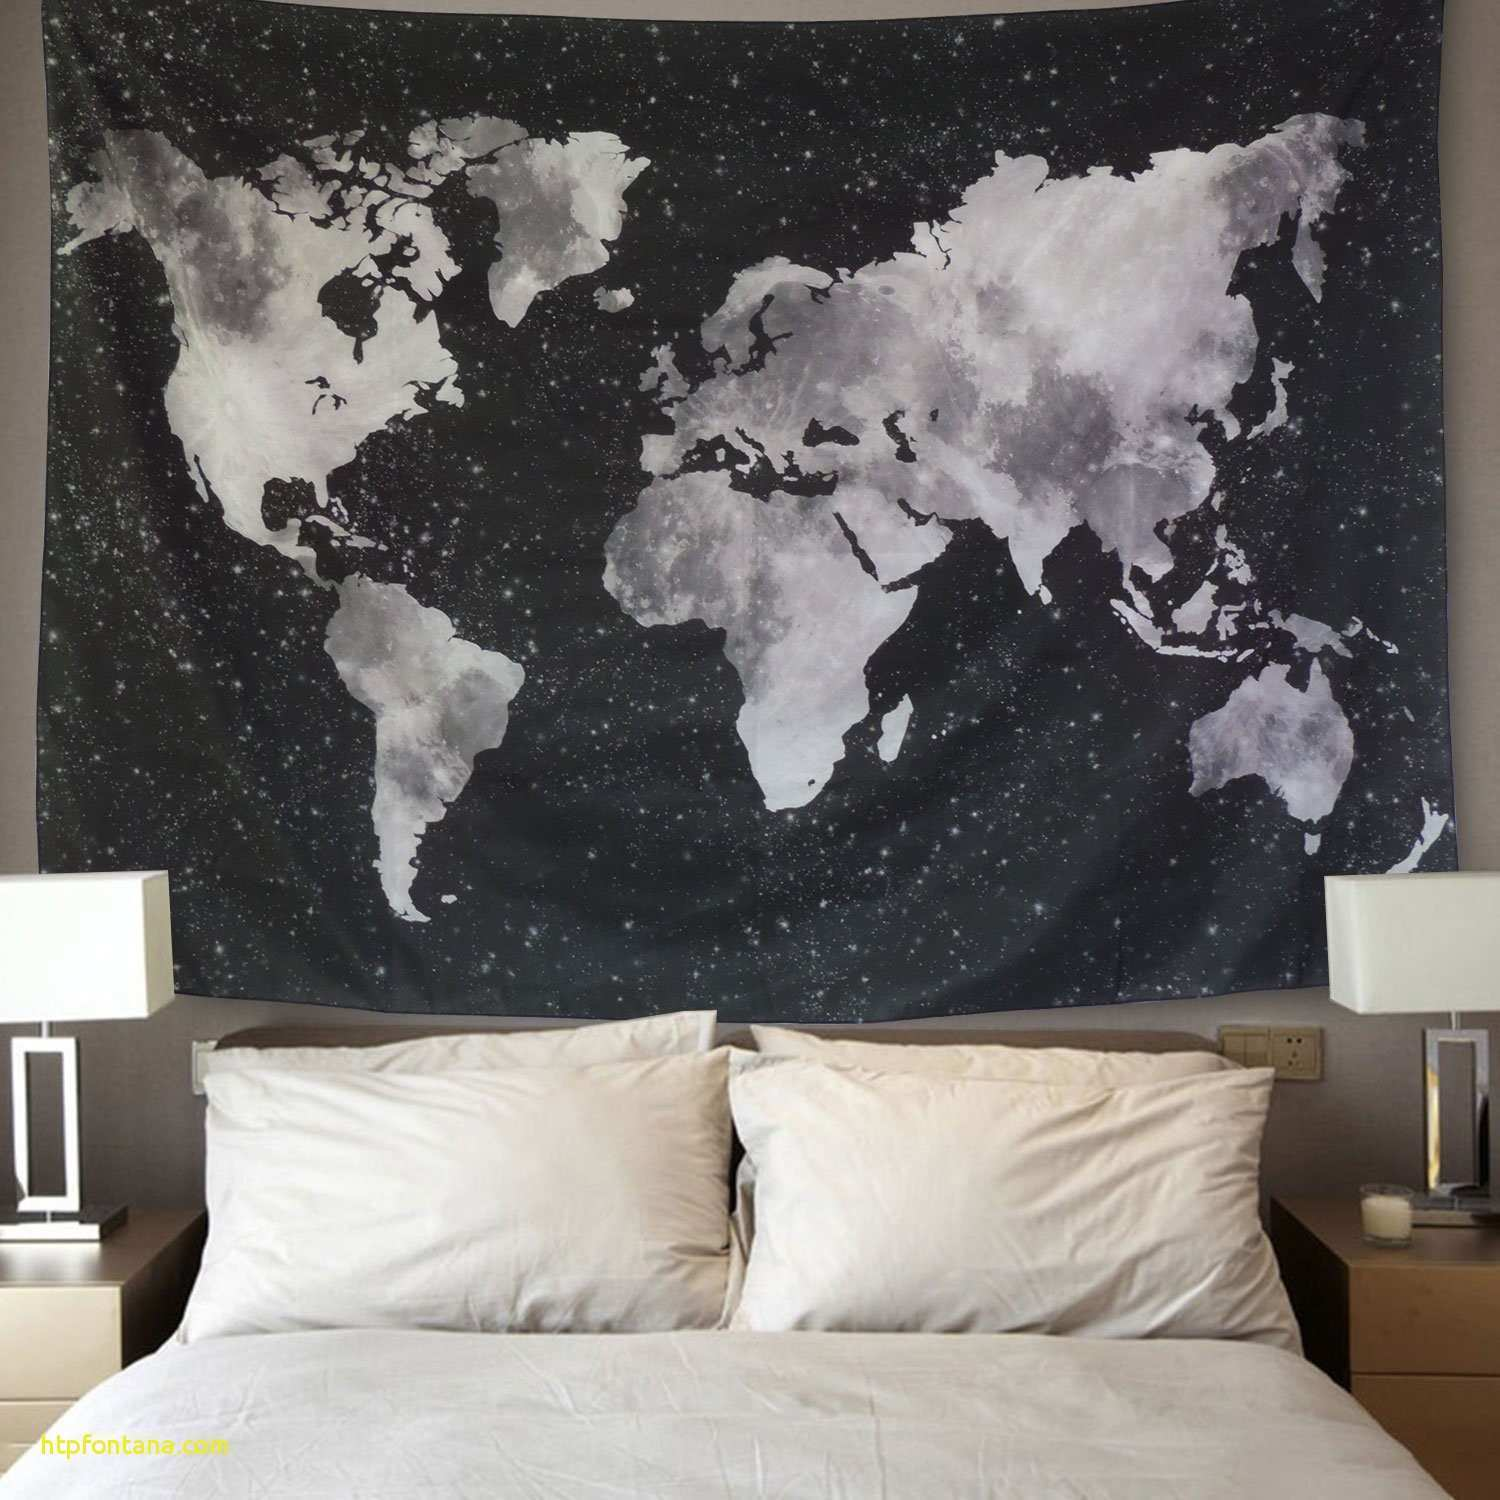 Living Room Wall Decor Map Luxury Starry World Tapestry Black White